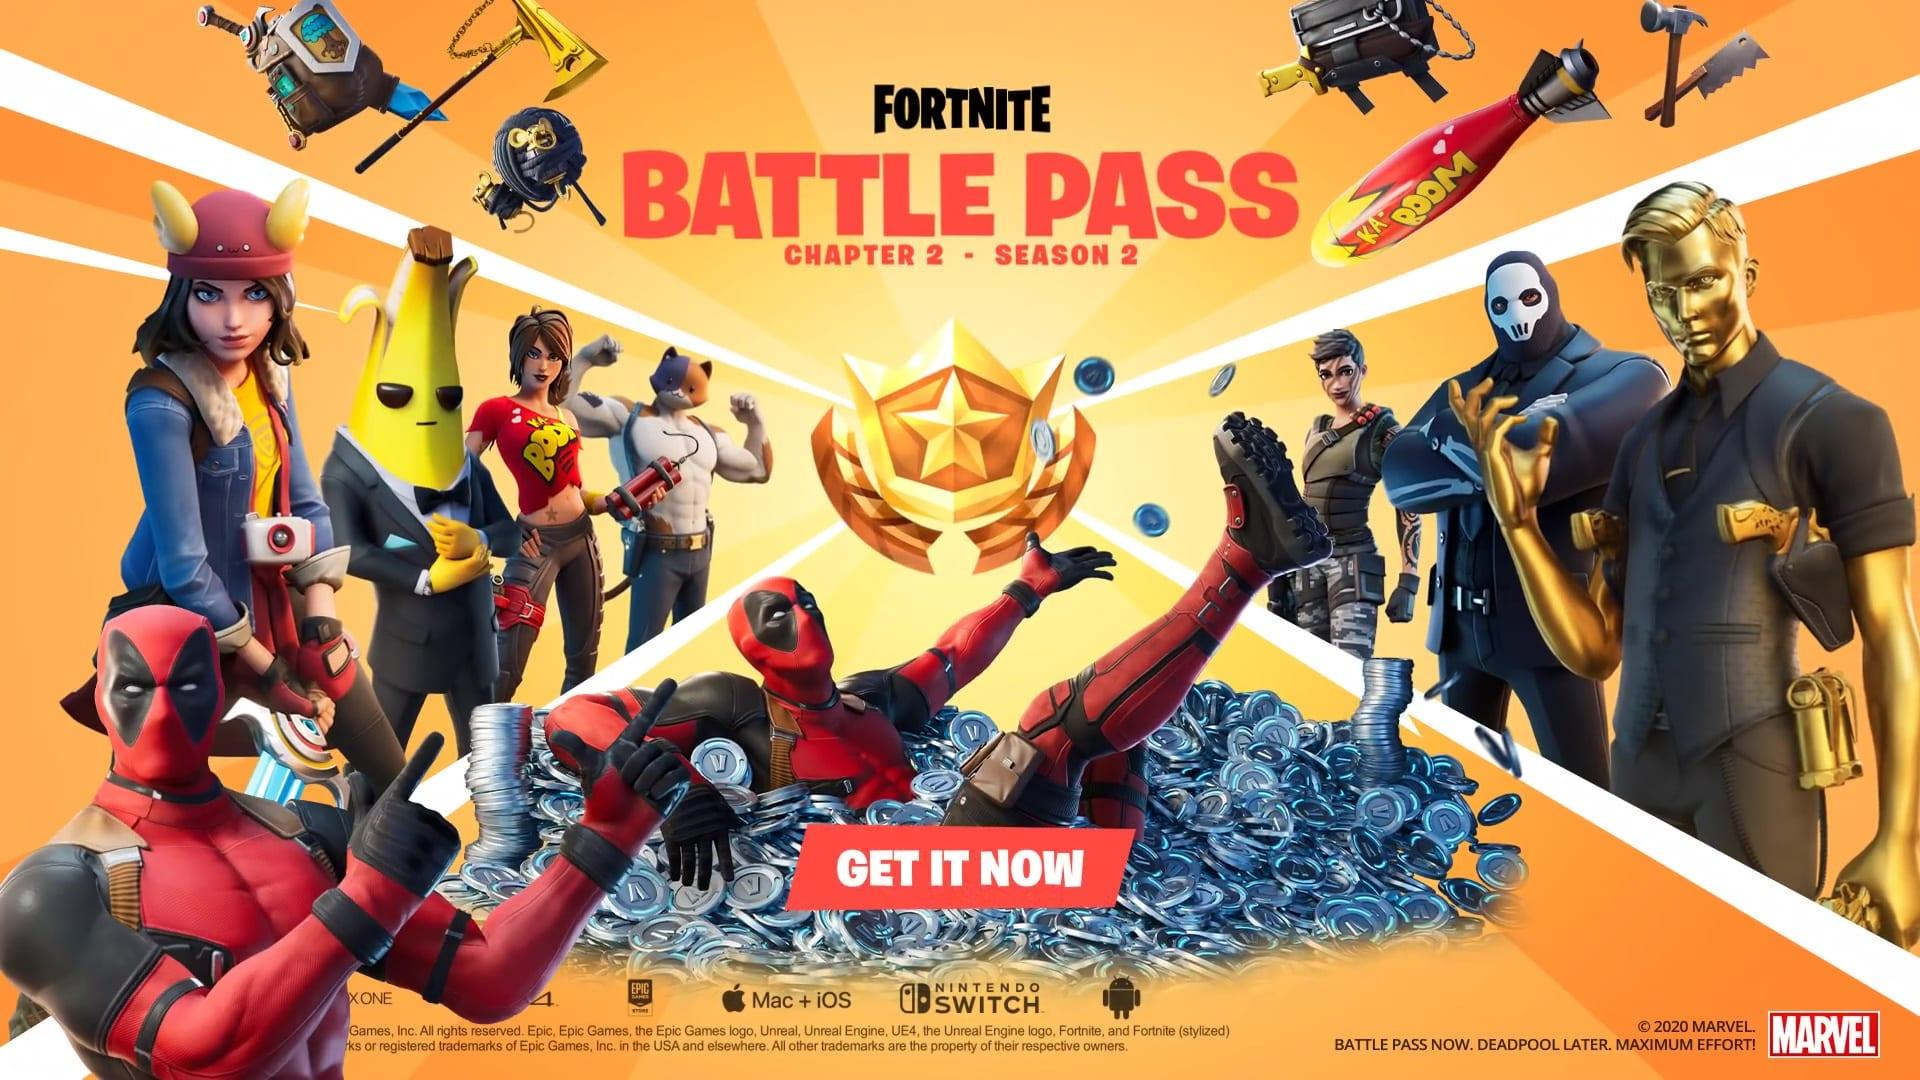 Fortnite Client fortnite' chapter 2 season 2 is all about secret agents and